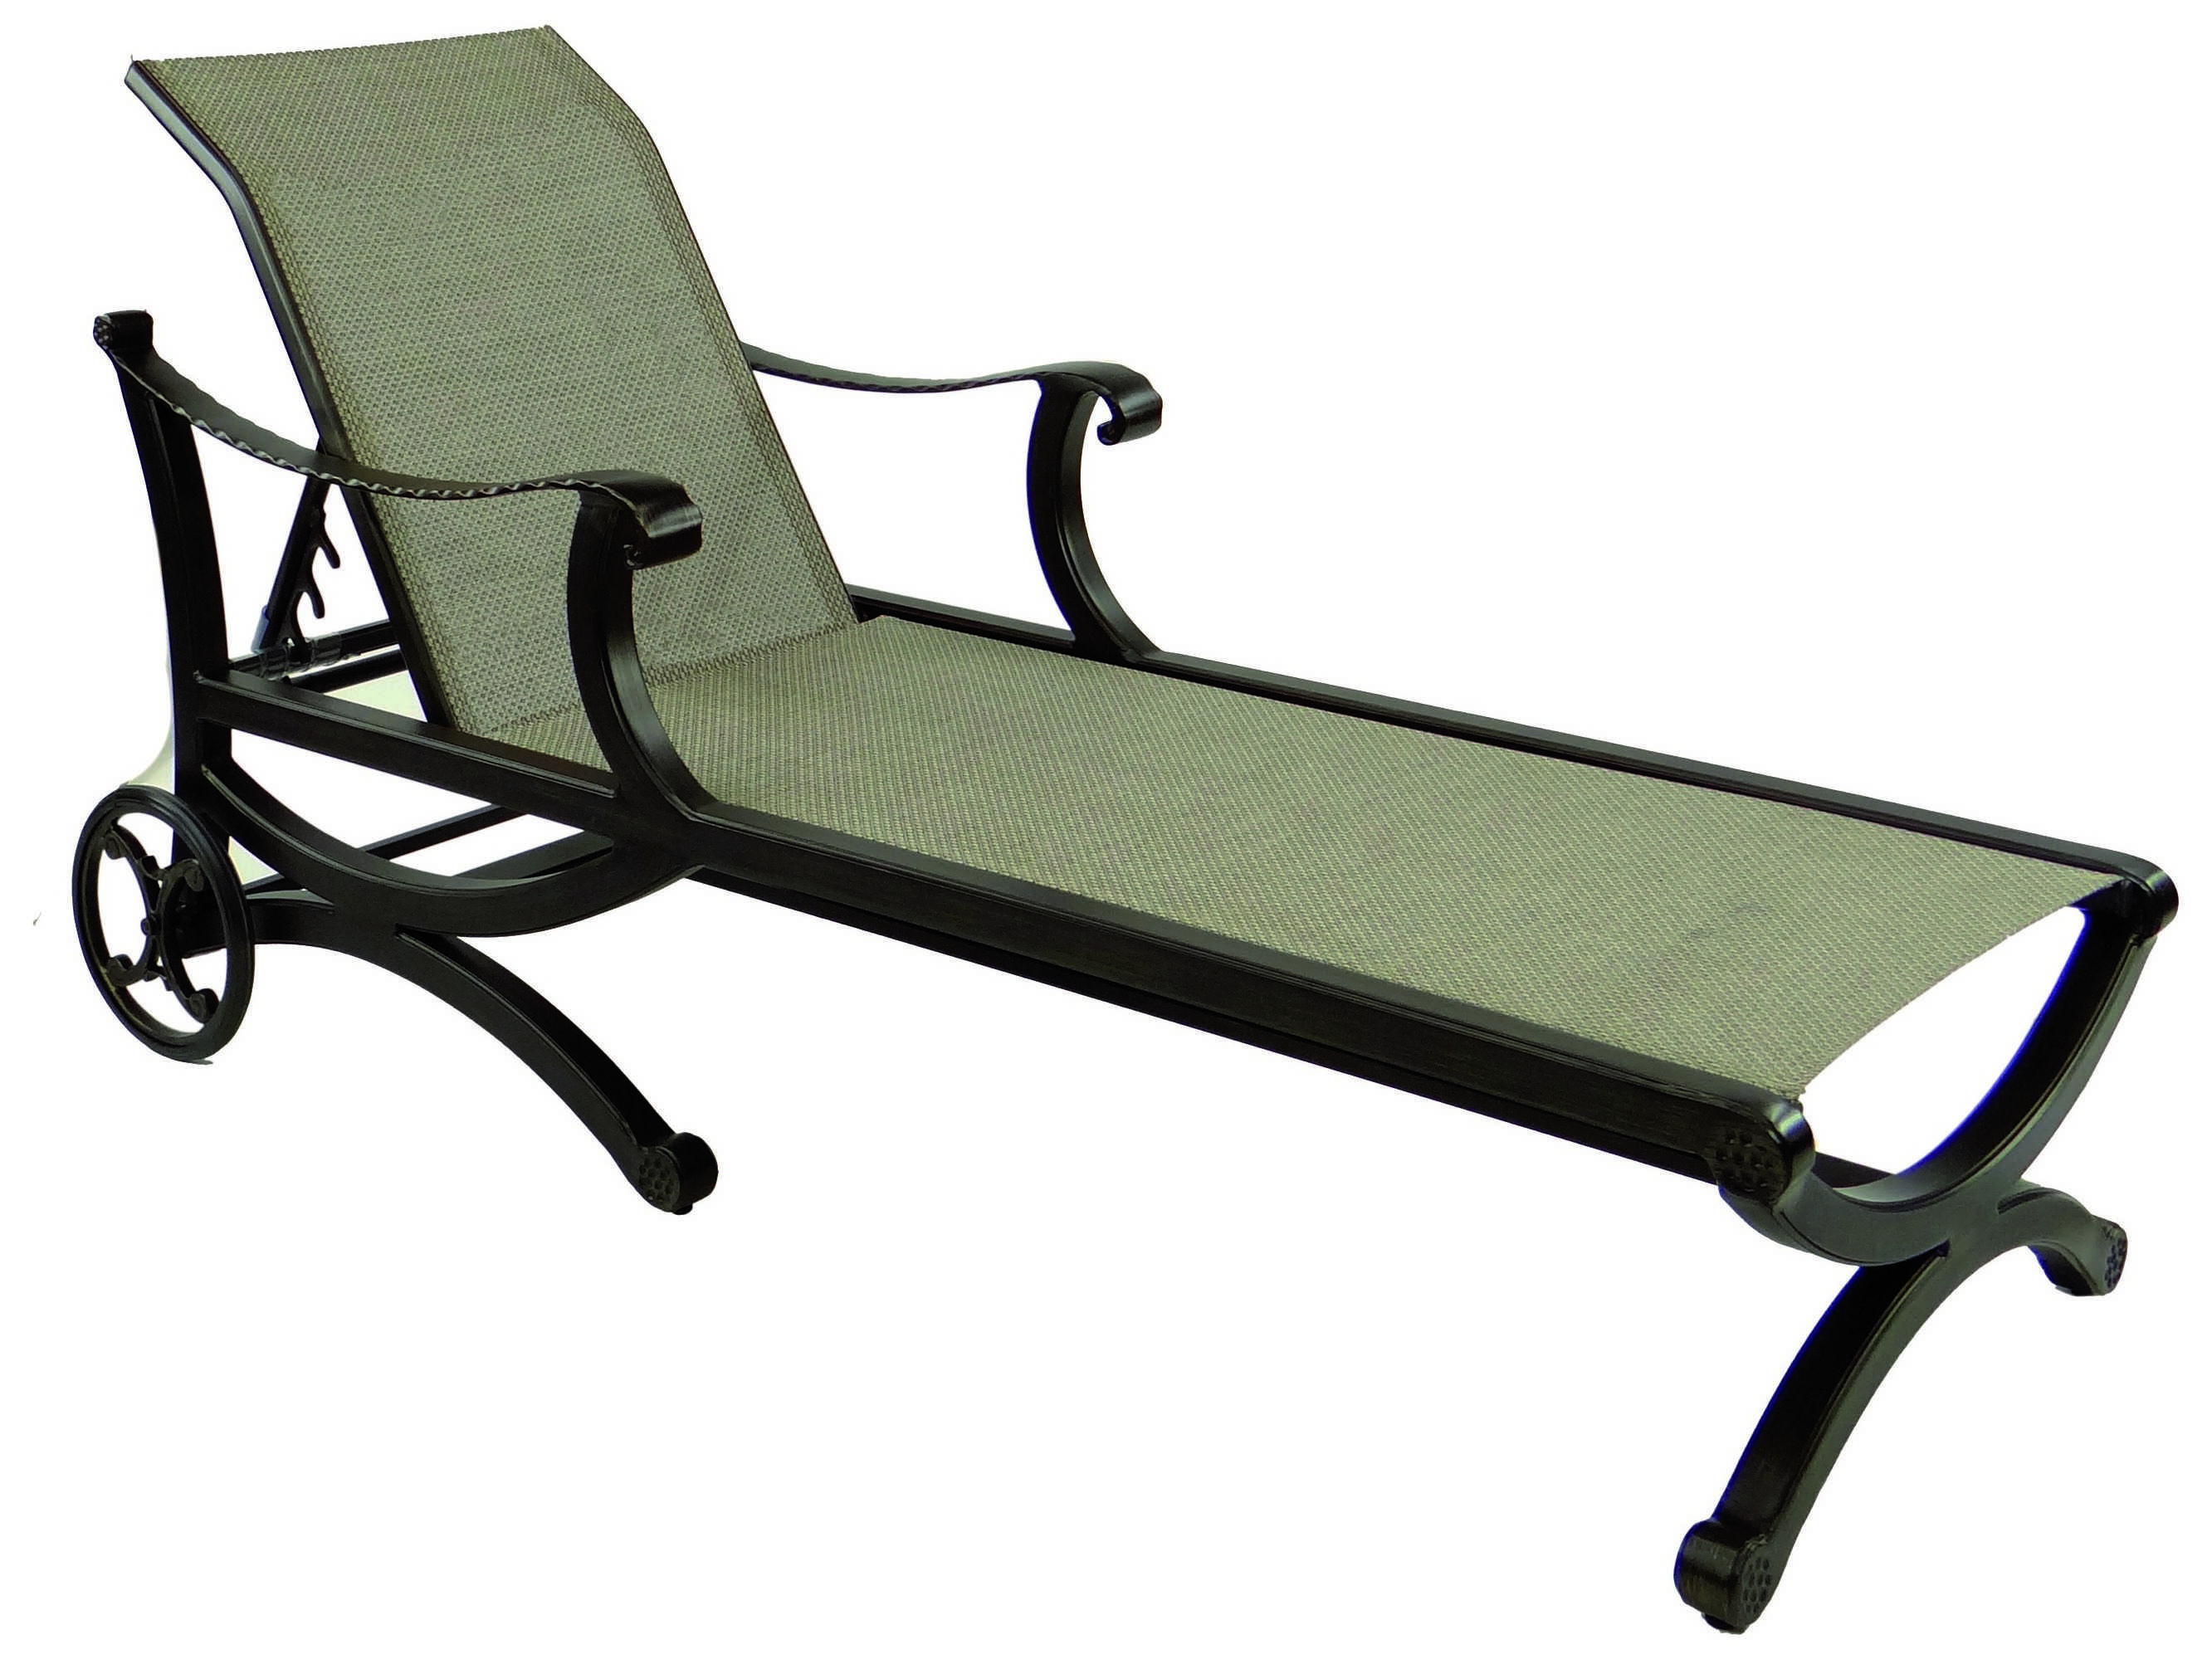 Castelle telluride sling cast aluminum adjustable chaise for Aluminum chaise lounge with wheels